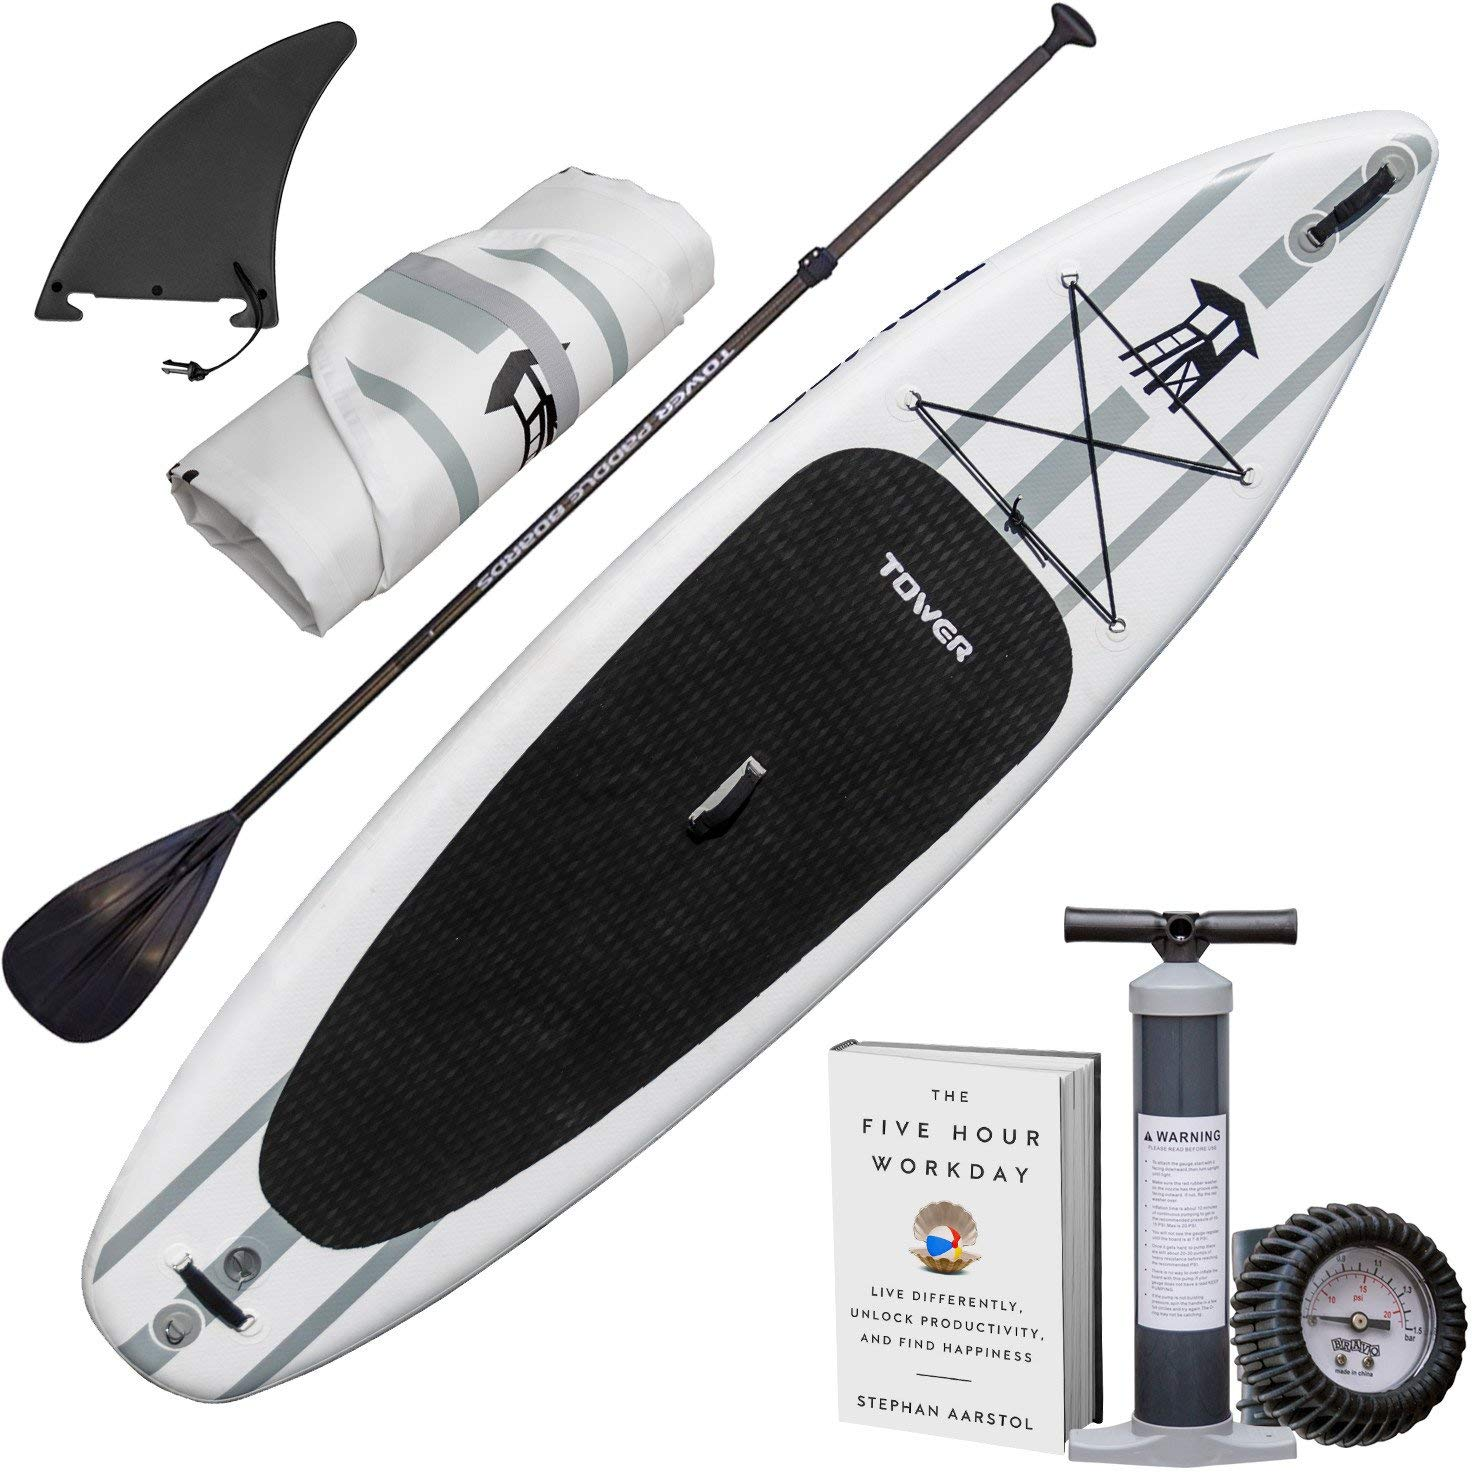 Tower Adventure Paddle board